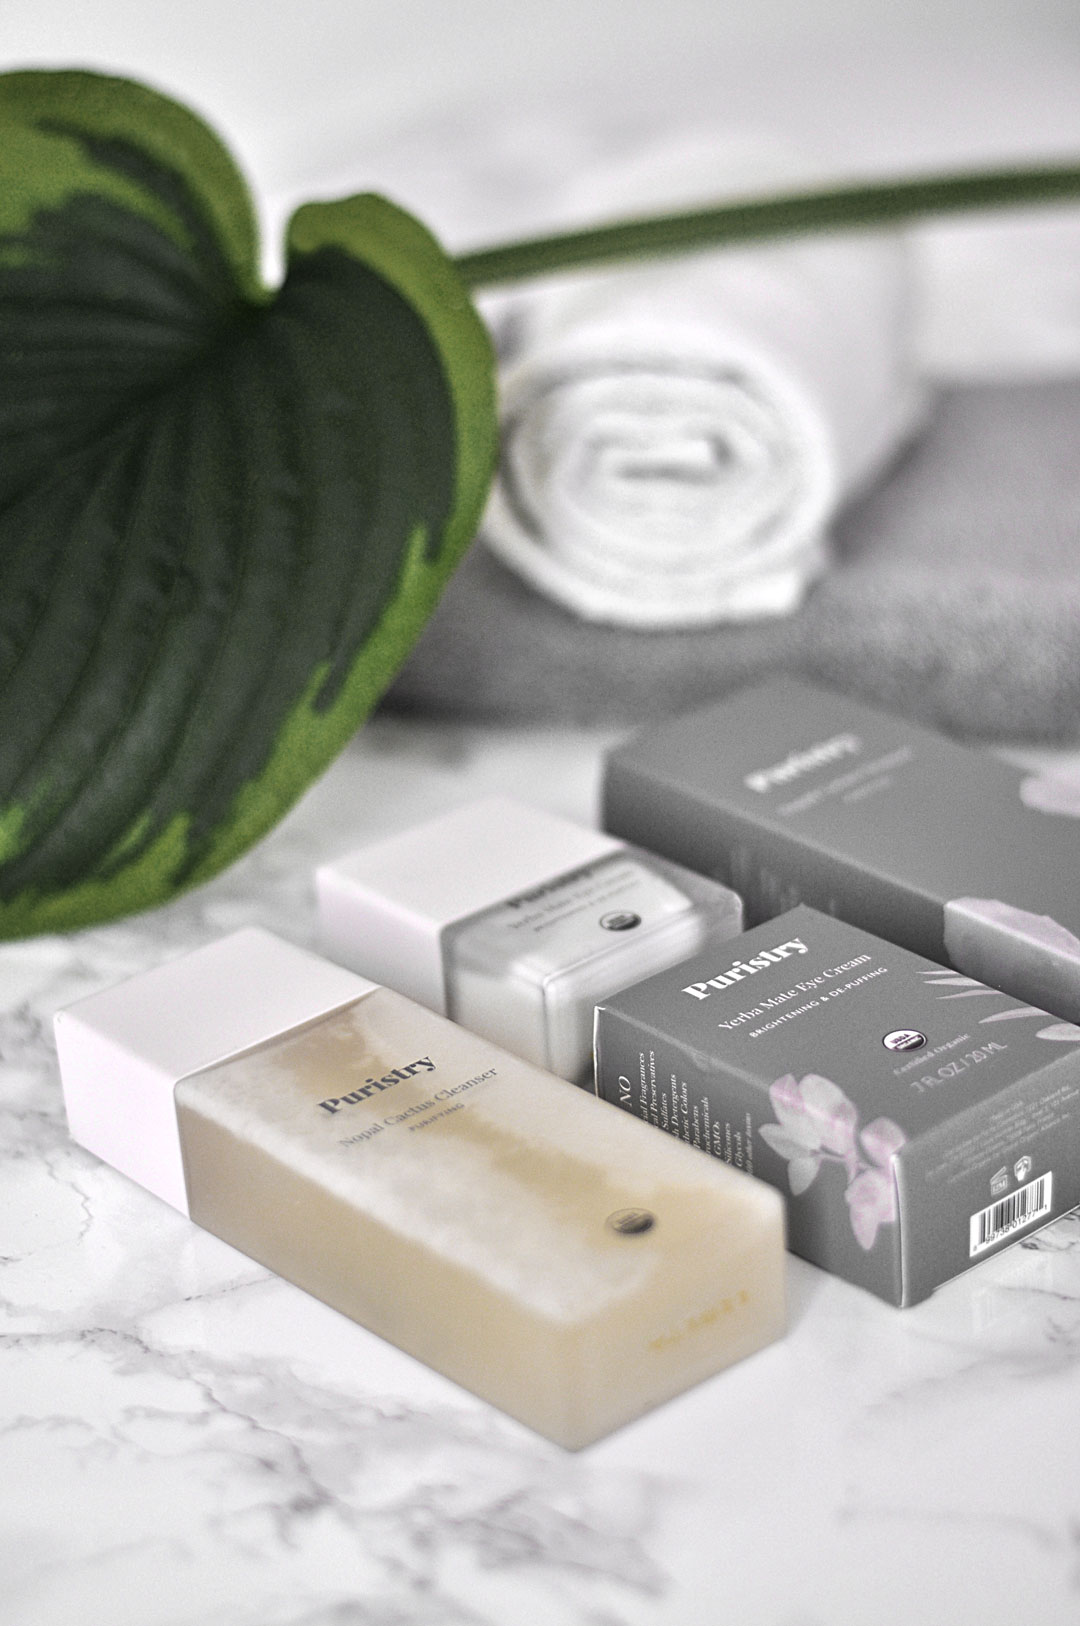 Say goodbye to huge pores, fine lines and wrinkles, dark circles, puffiness, and blemishes. The Puristry skincare line is your ticket to glowing skin.